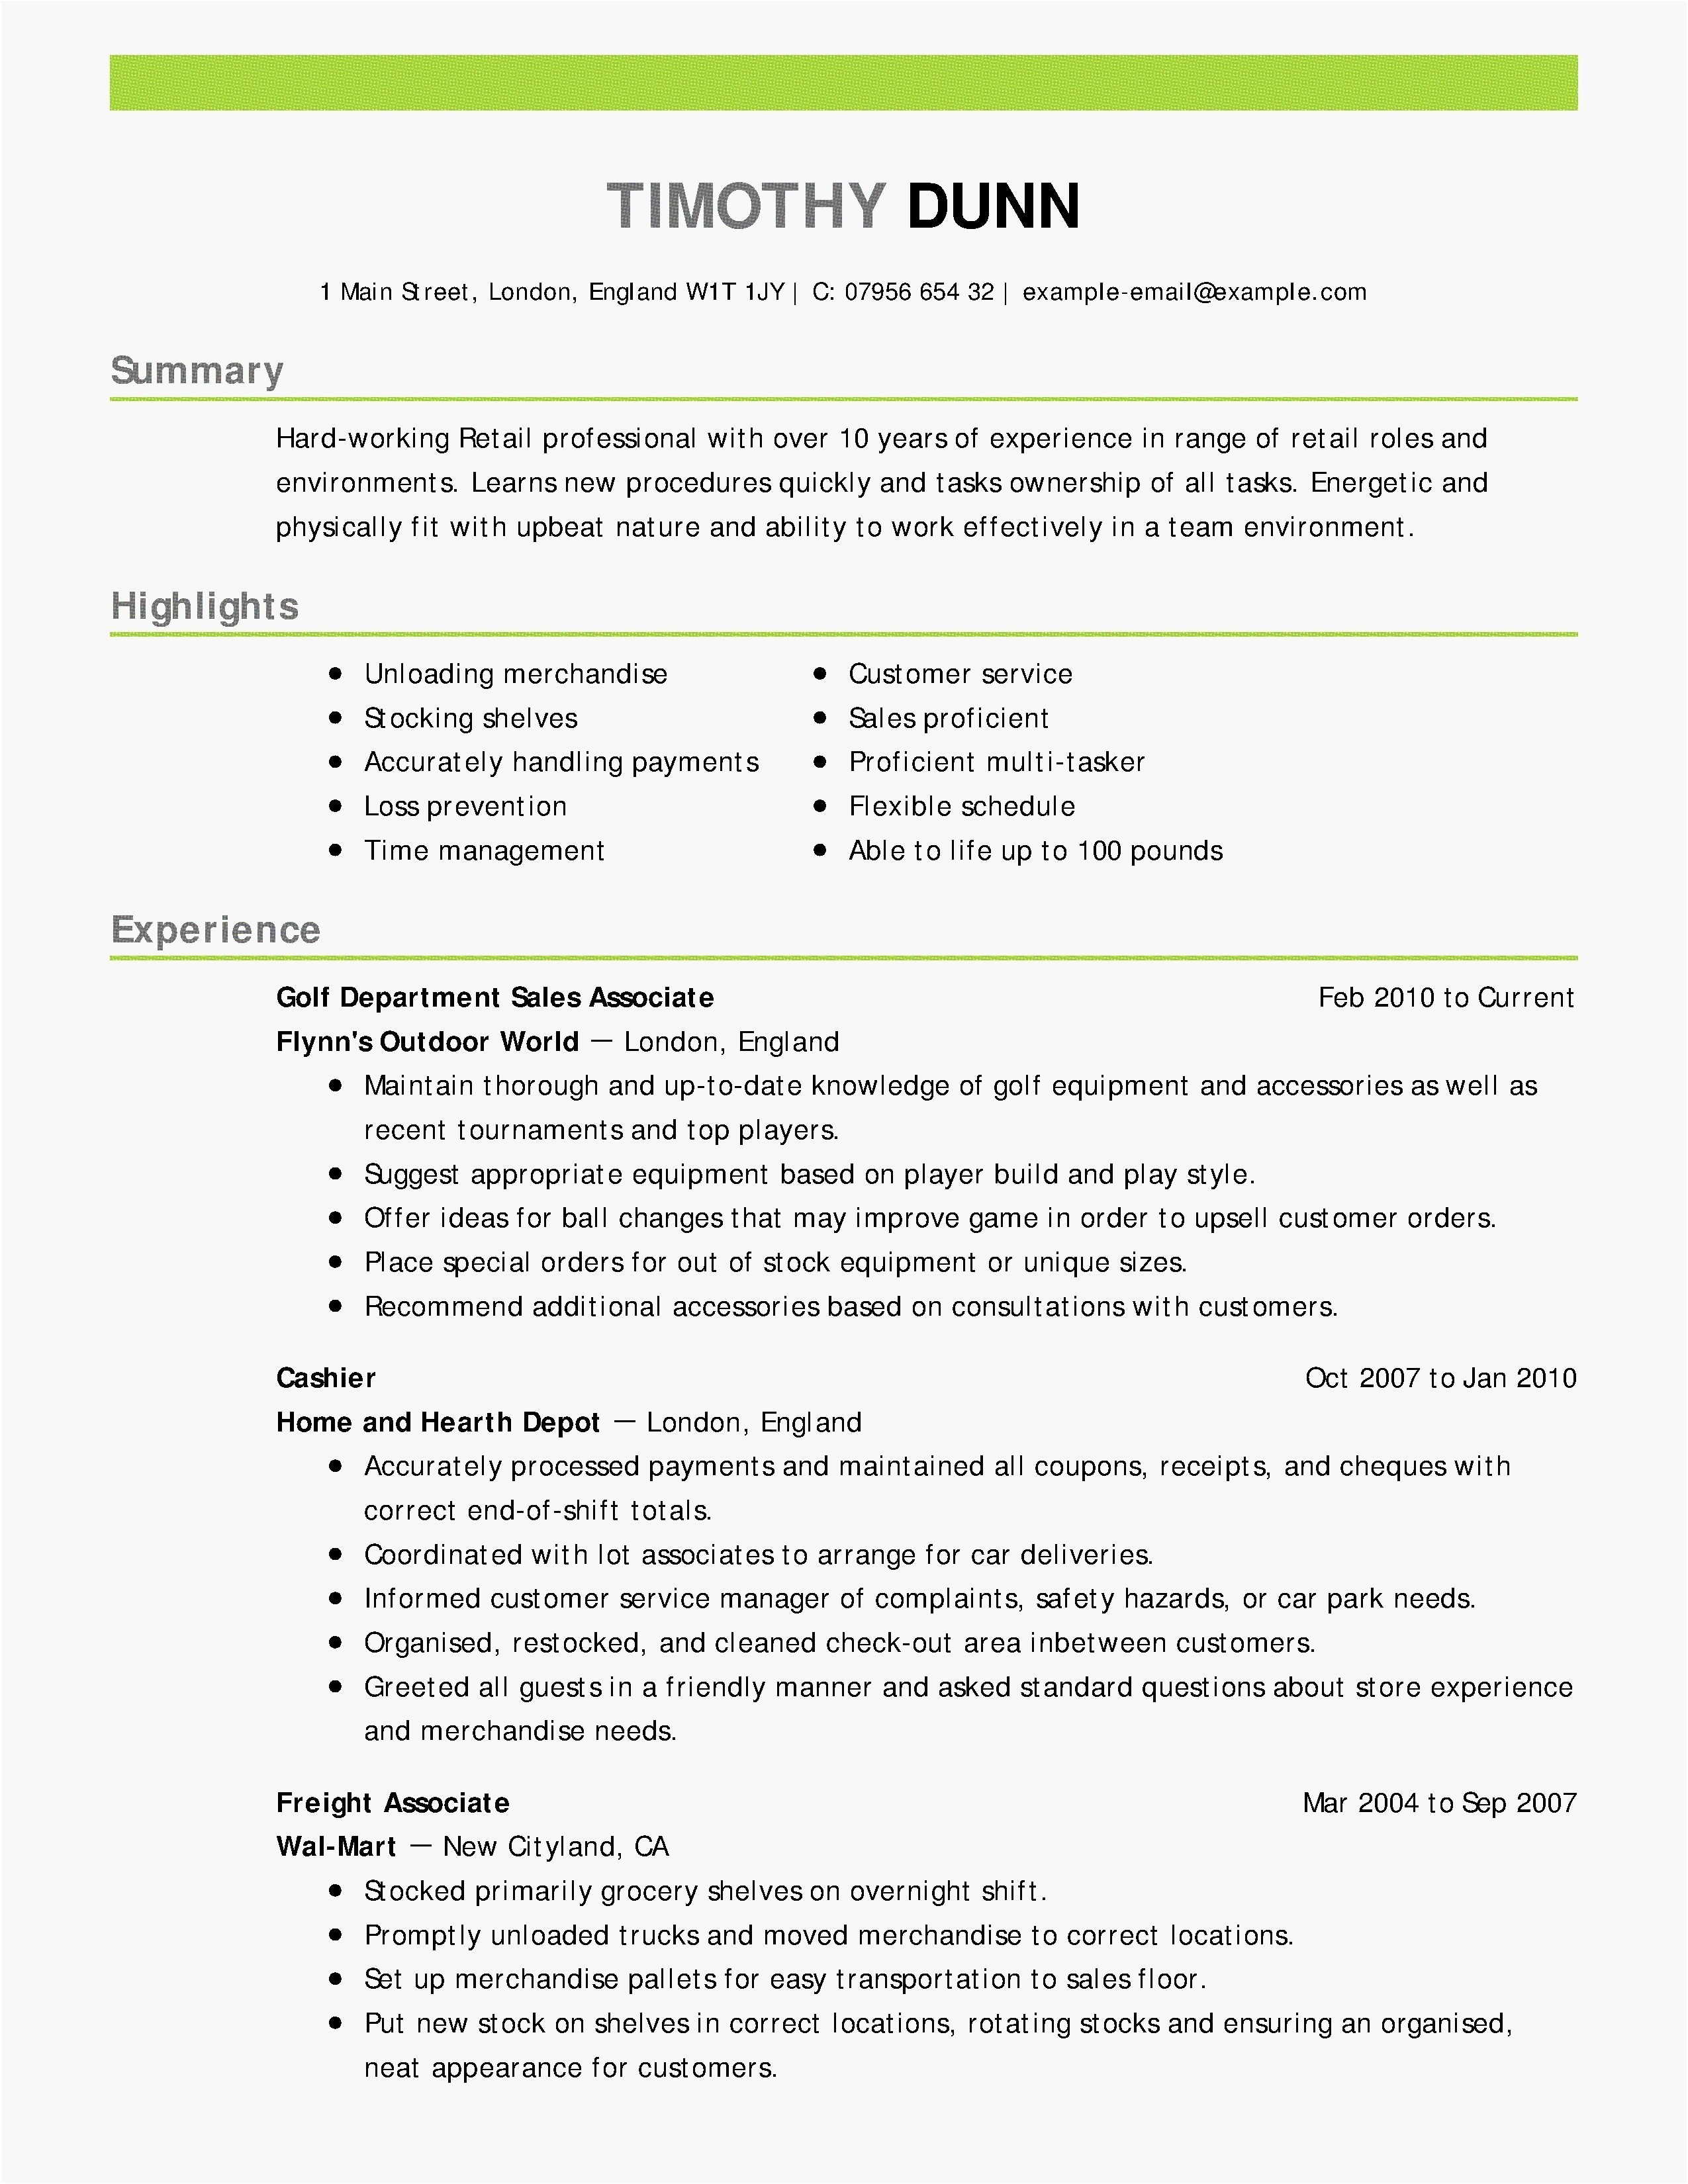 Resume Cover Letter Template Free - Entry Level Cover Letter Template Free Examples